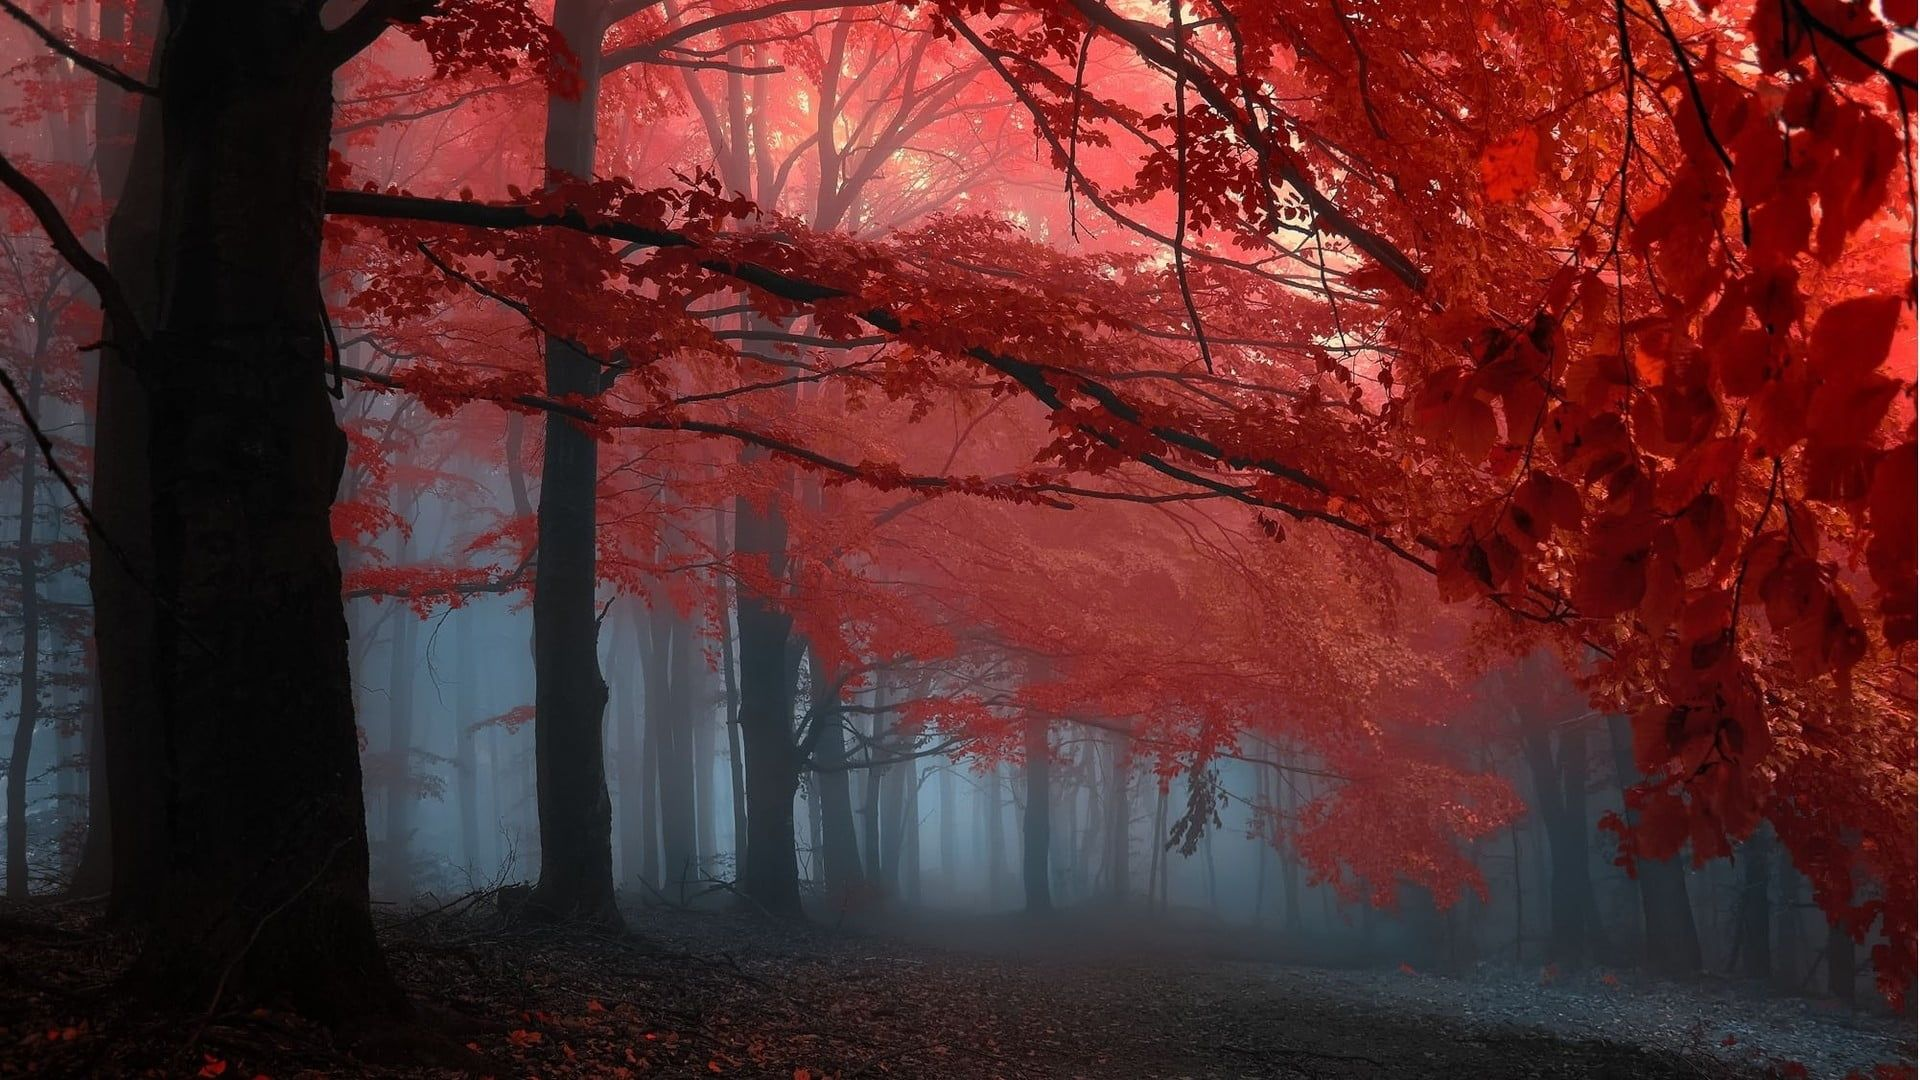 Black And Pink Trees Painting Red Tree Illustration Nature Landscape Trees Forest Branch Leaves Fall Mist 1 Fantasy Landscape Autumn Forest Landscape